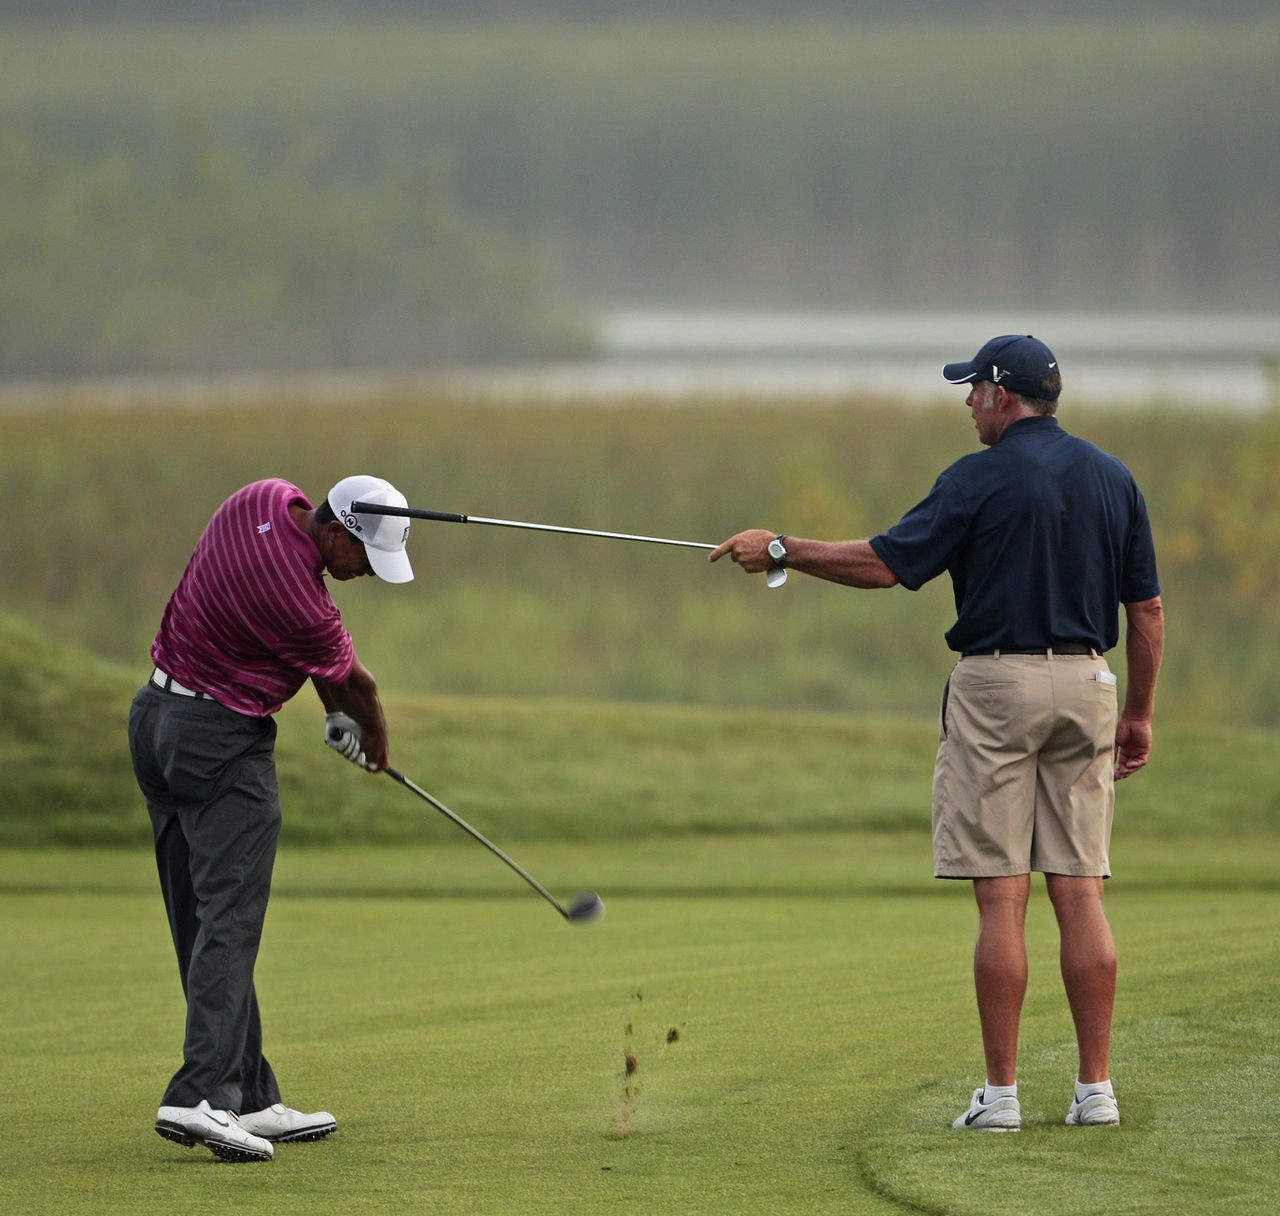 Caddie Steve Williams houdt tijdens een oefenronde met een club het hoofd van Tiger Woods stil. Foto AP Tiger Woods hits a shot as caddie Steve Williams holds a club during a practice round for the PGA Championship golf tournament Tuesday, Aug. 10, 2010, at Whistling Straits in Haven, Wis. (AP Photo/Charlie Riedel)